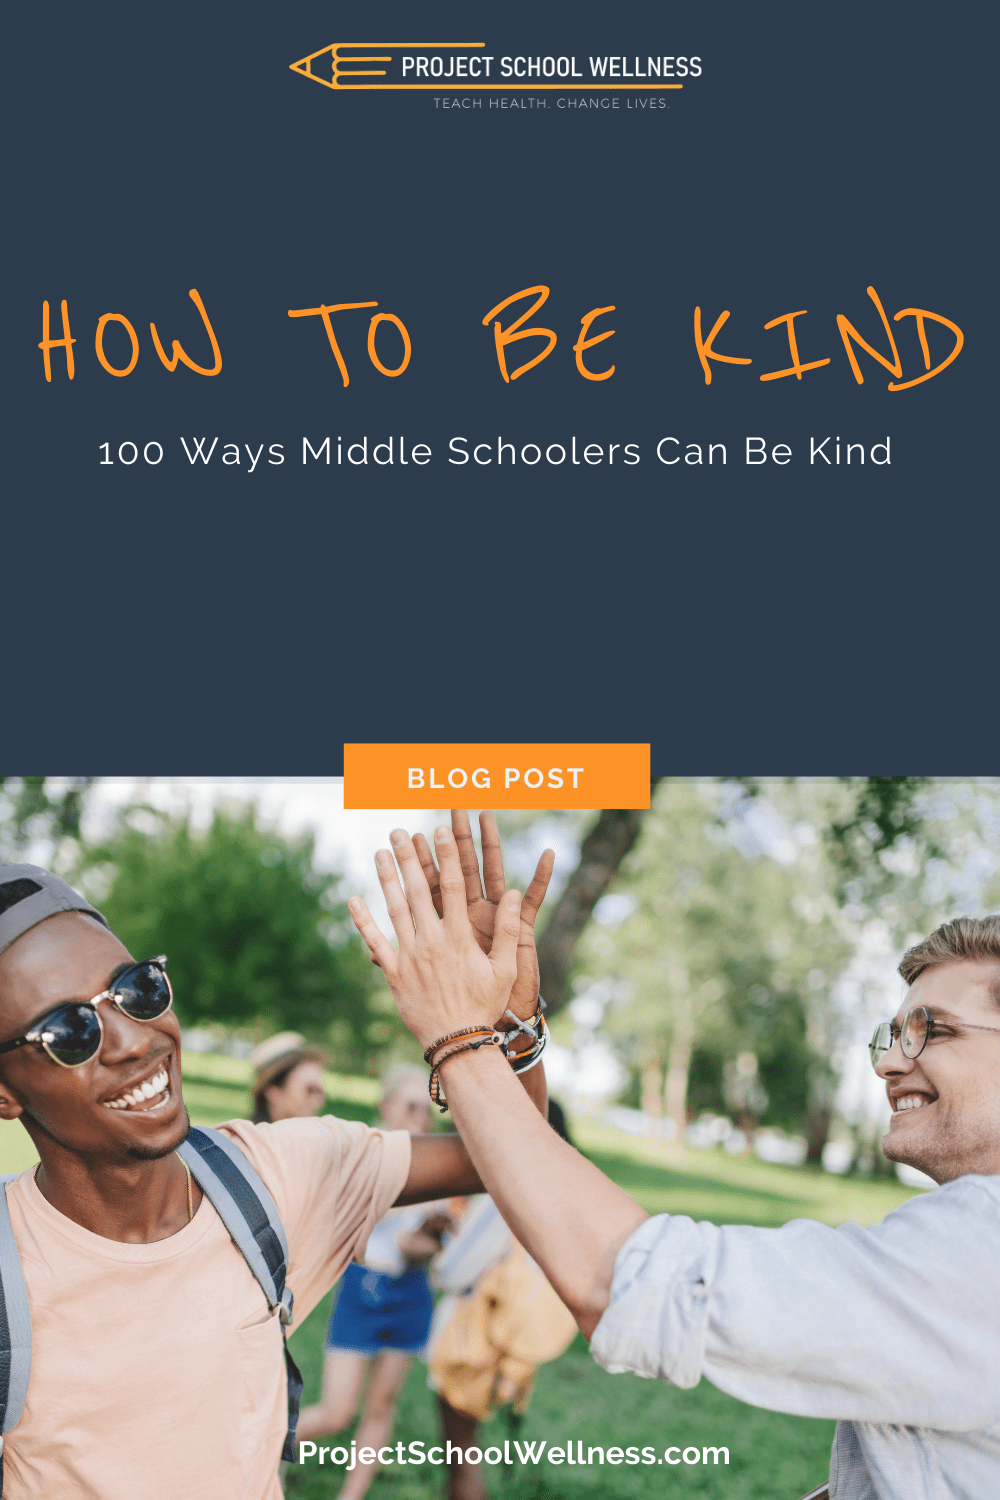 How to Be Kind - 100 Random acts of Kindness for students to try - tips for boosting school culture